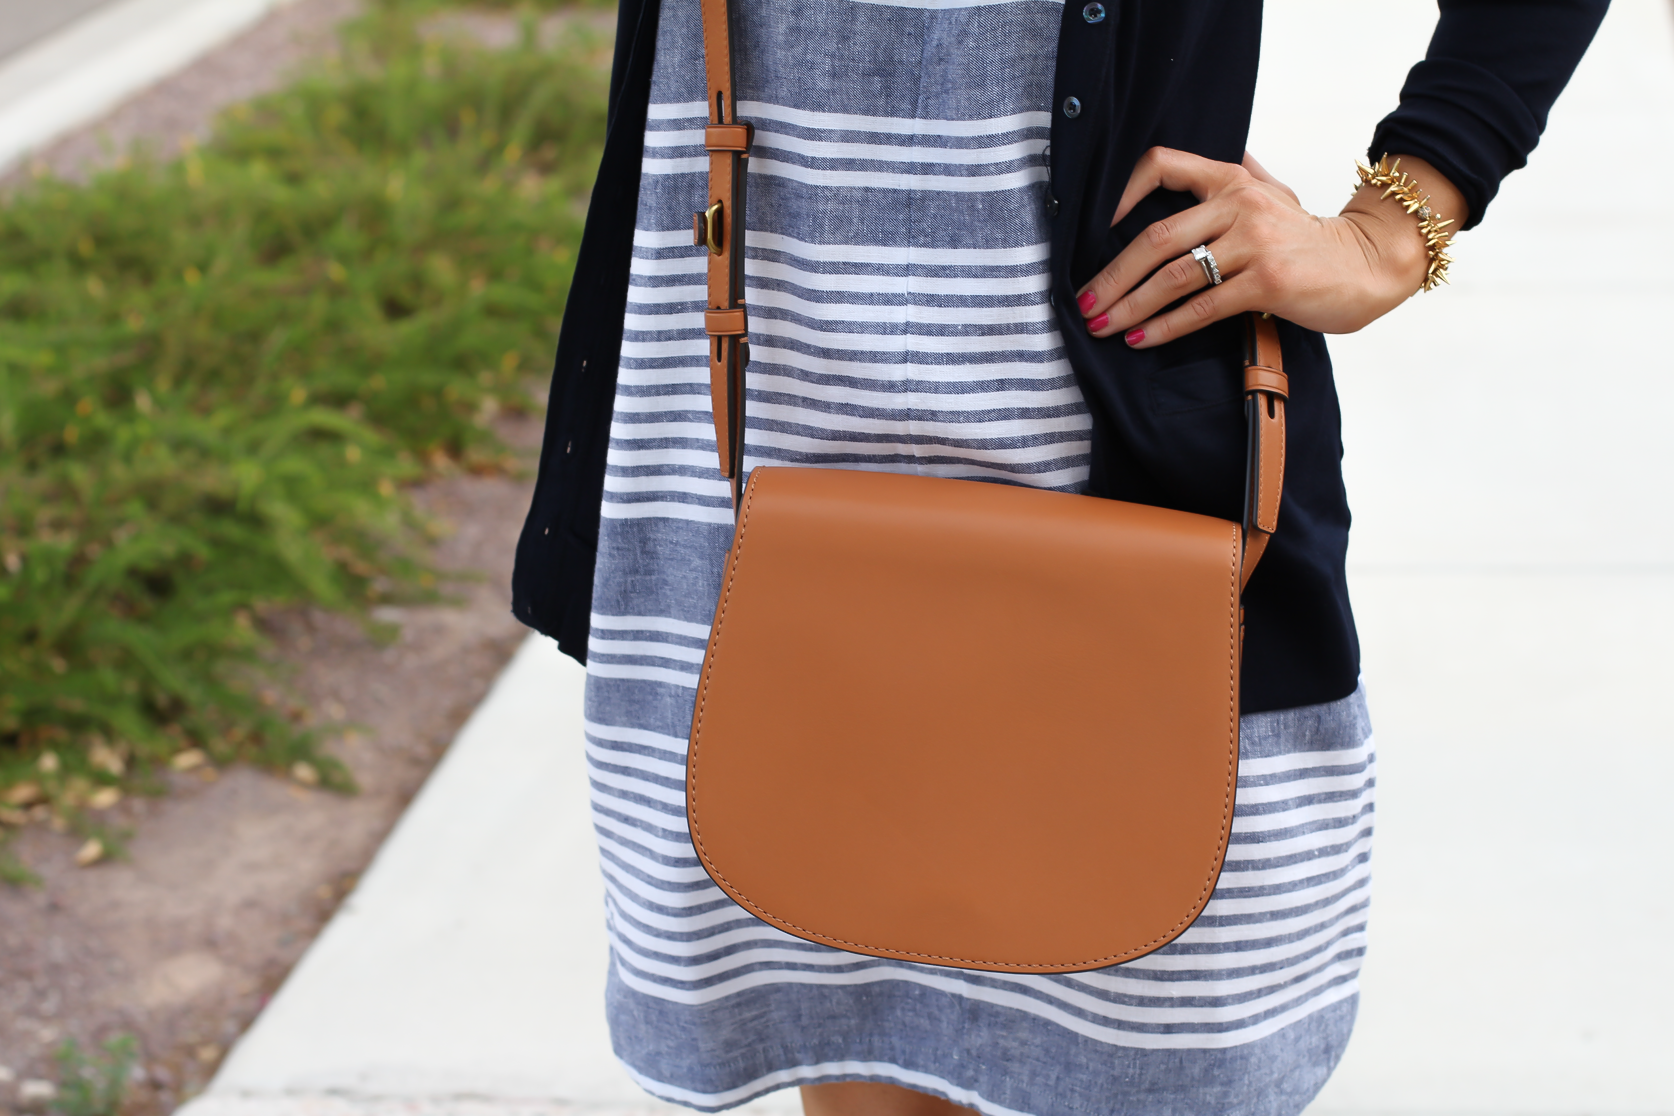 Blue Chambray White Striped Dress, Navy Cotton Cardigan, Tan Suede Espadrilles, Tan Leather Crossbody, Old Navy, J.Crew, Chloe, Tory Burch 18